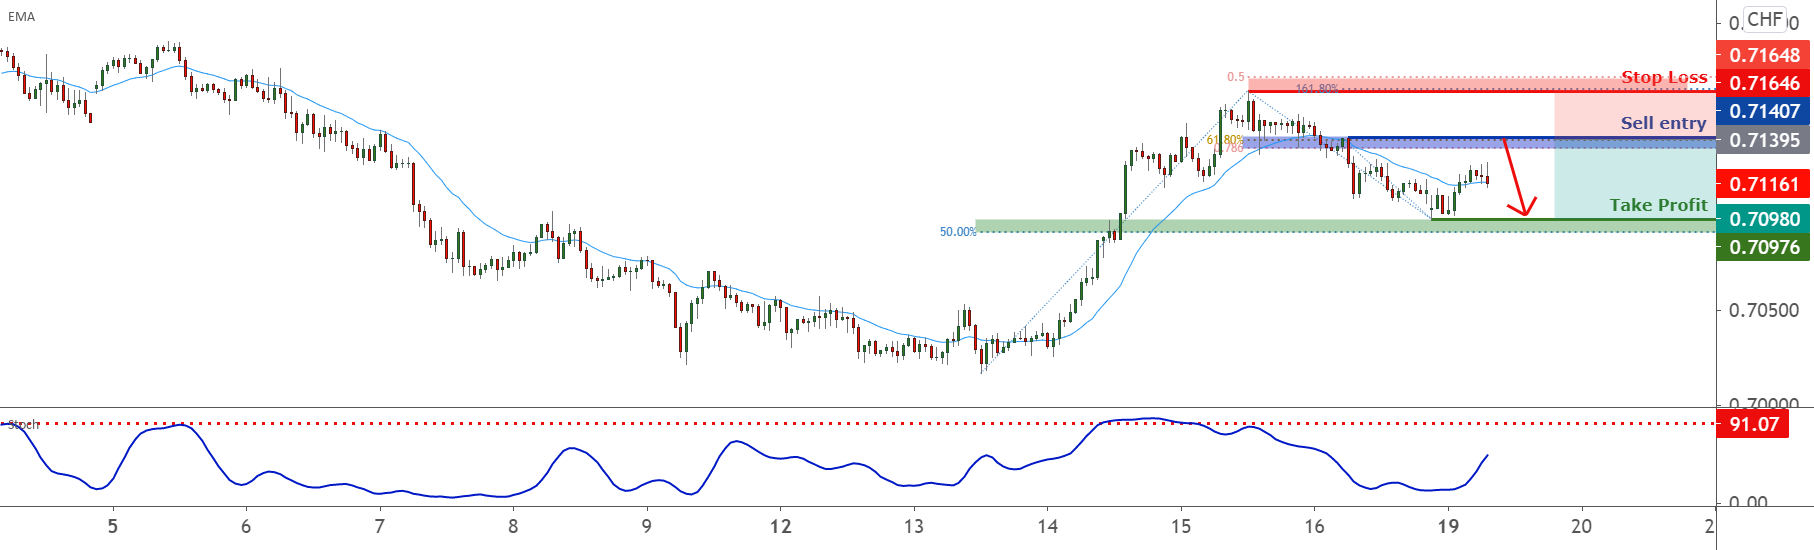 AUDCHF facing bearish pressure   19th Apr 2021 for FX:AUDCHF by FXCM